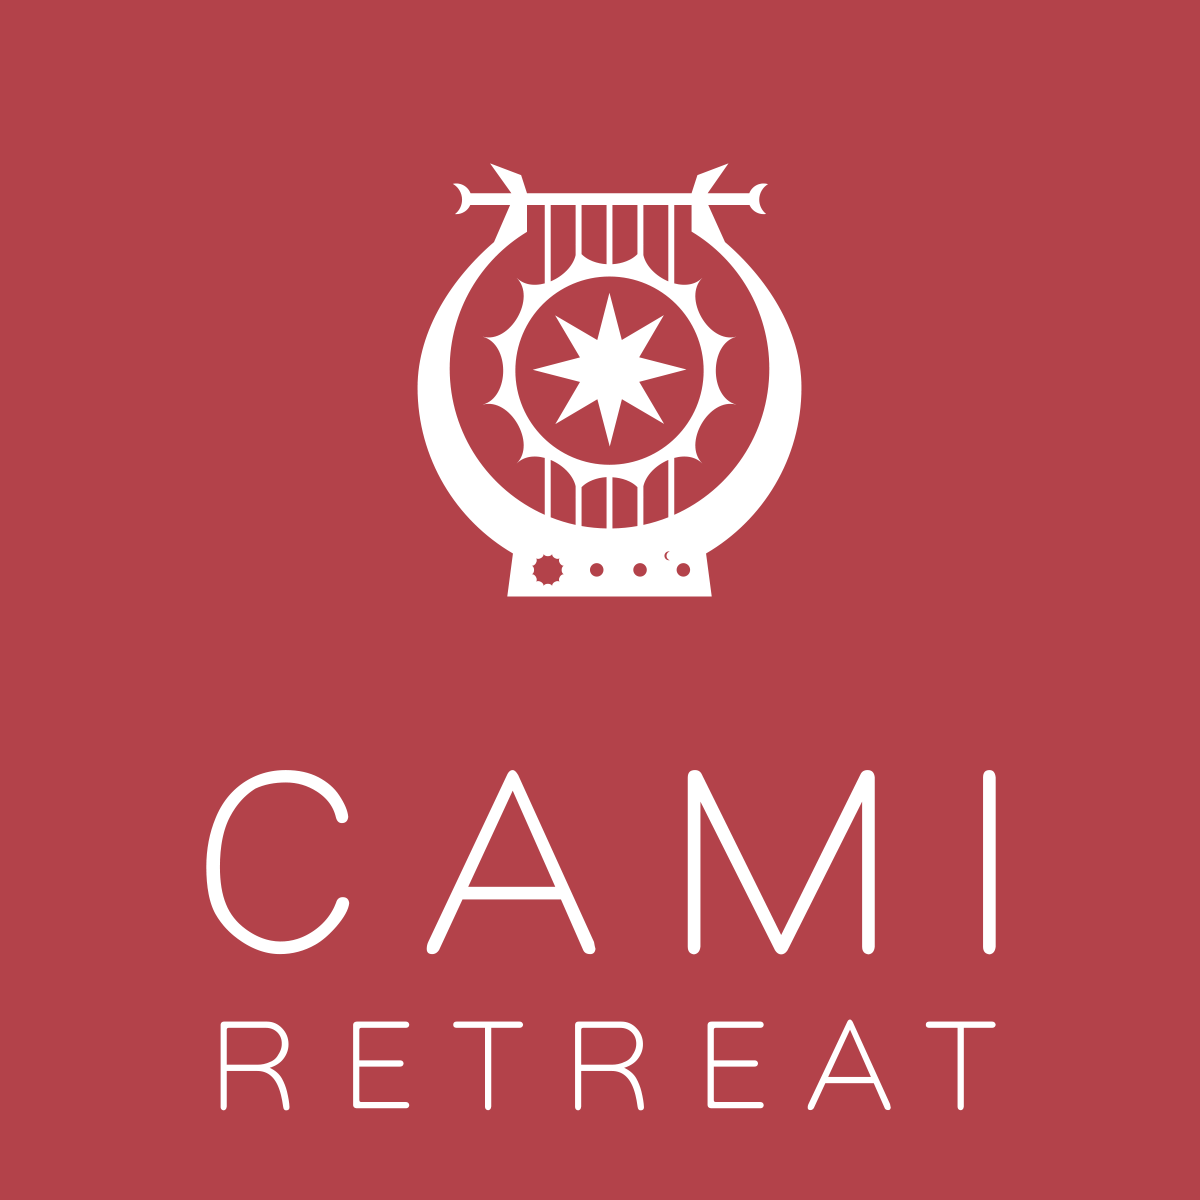 CAMI RETREAT